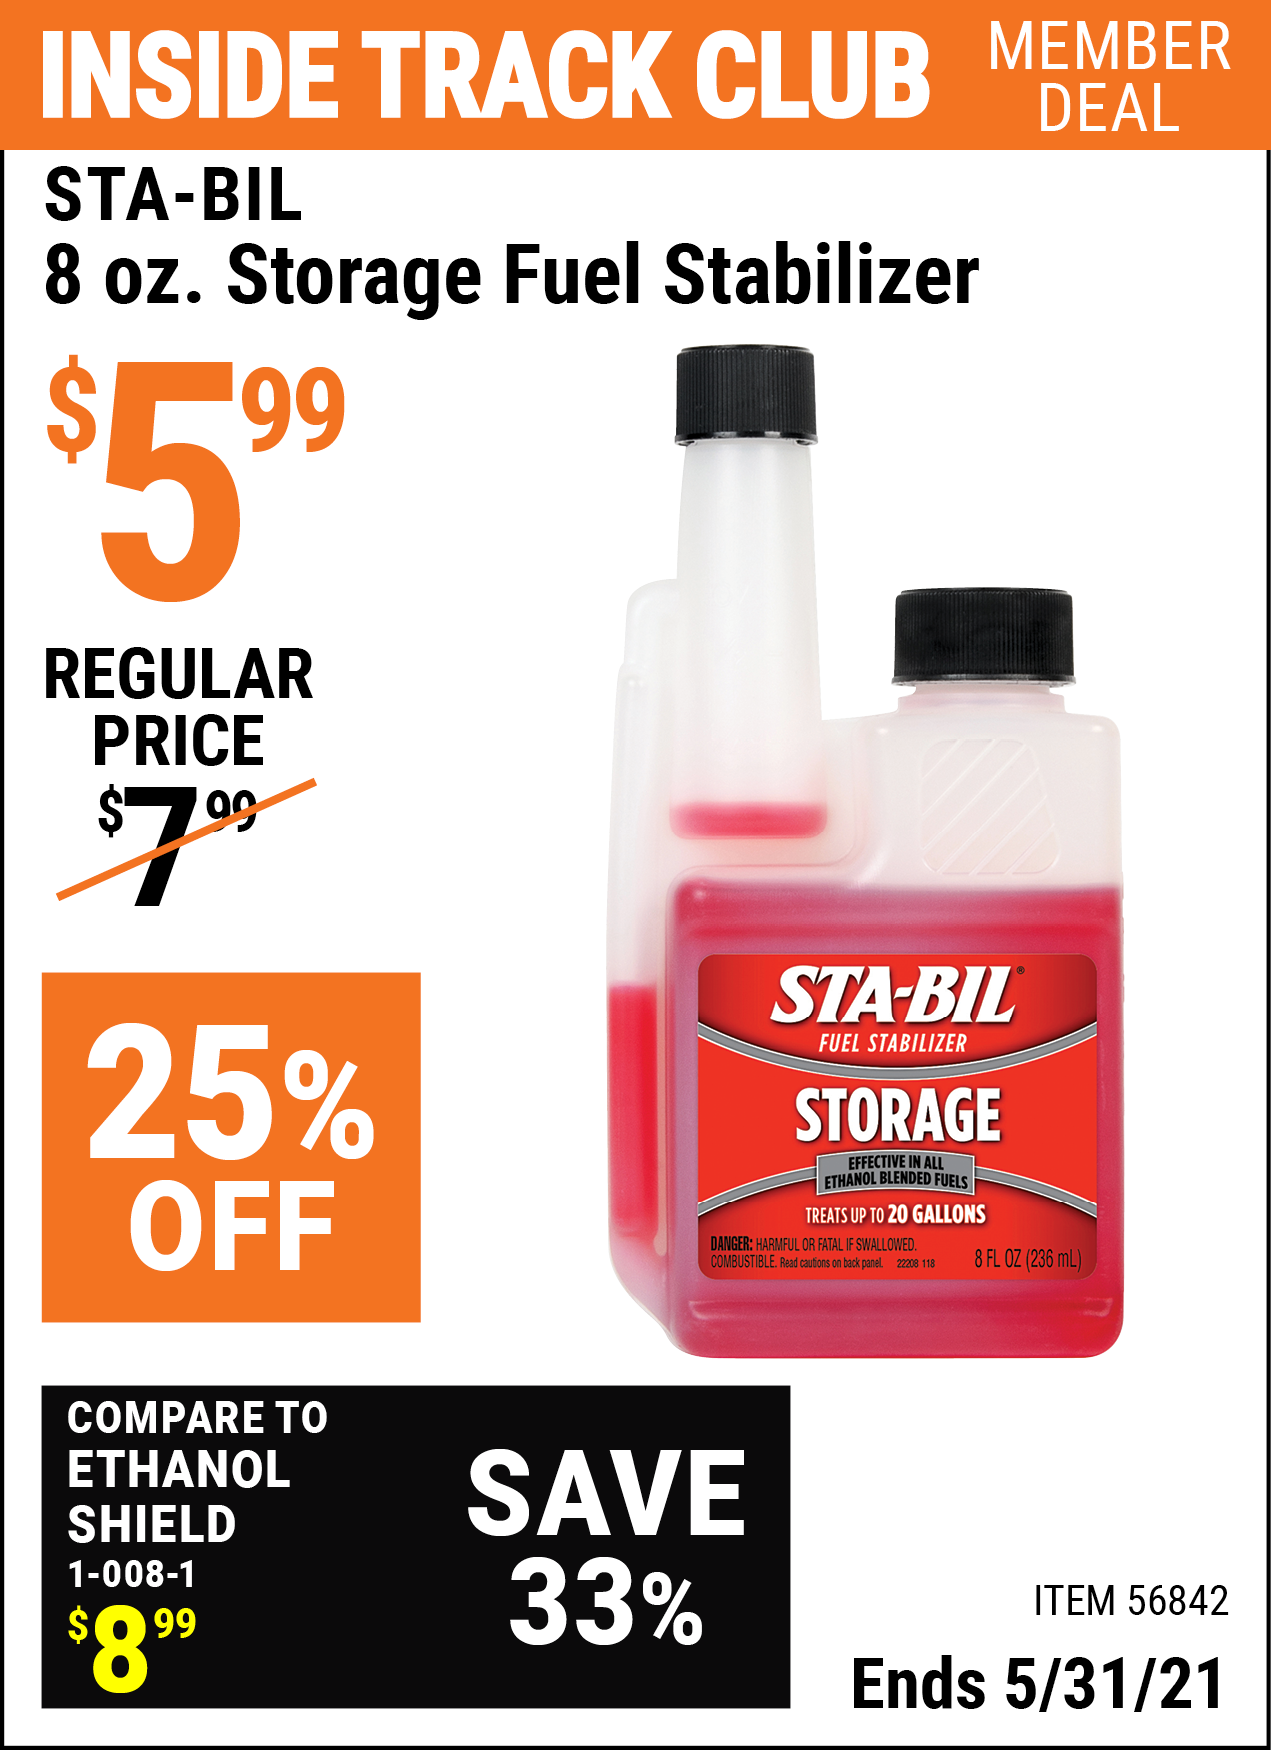 Inside Track Club members can buy the STA-BIL 8 oz. Storage Fuel Stabilizer (Item 56842) for $5.99, valid through 5/31/2021.